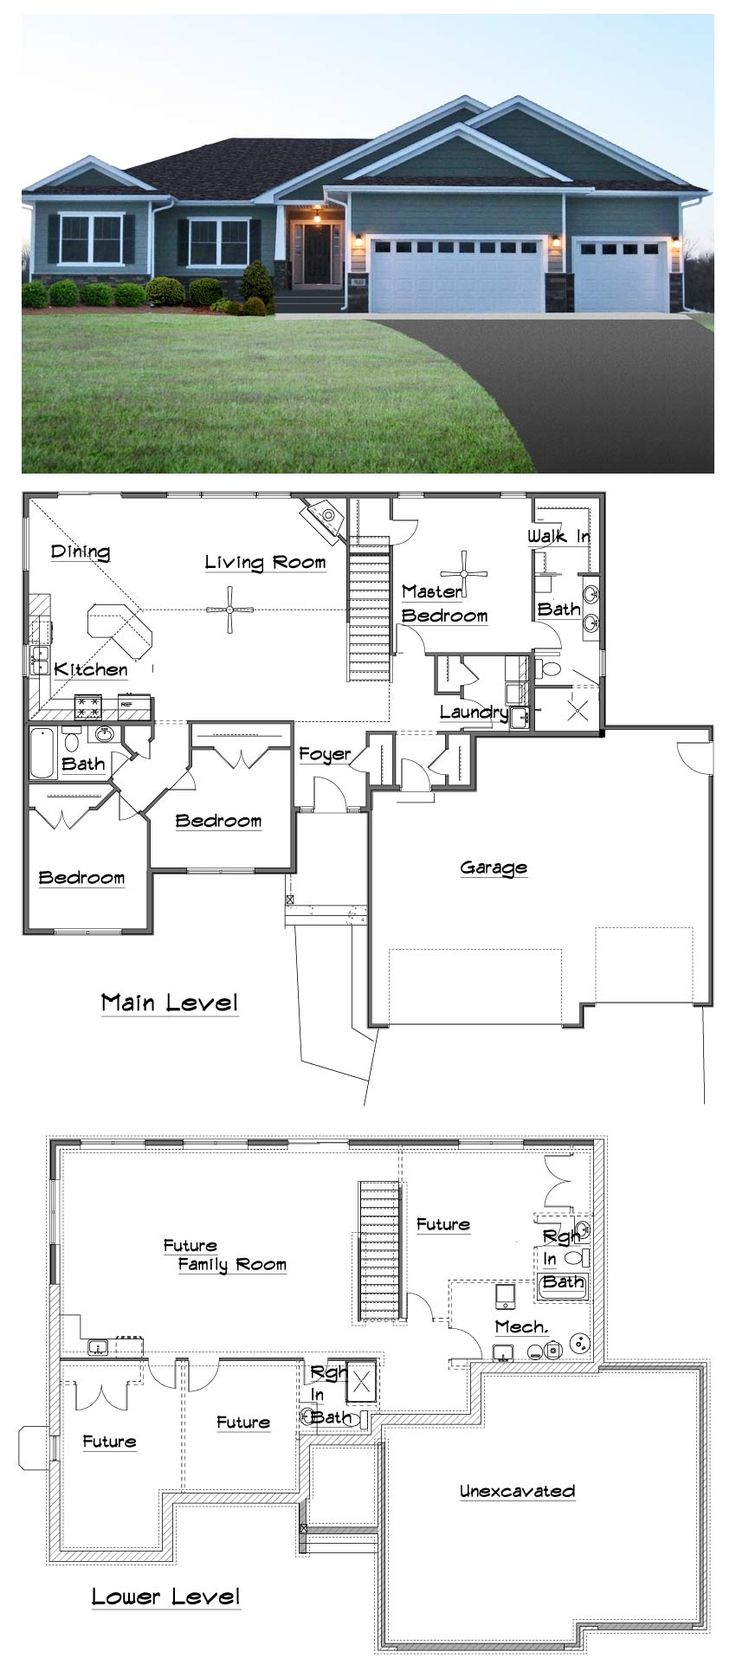 13 best sherco home models images on pinterest custom home sherco construction mn custom home builders the gaffney newhomeplans malvernweather Gallery